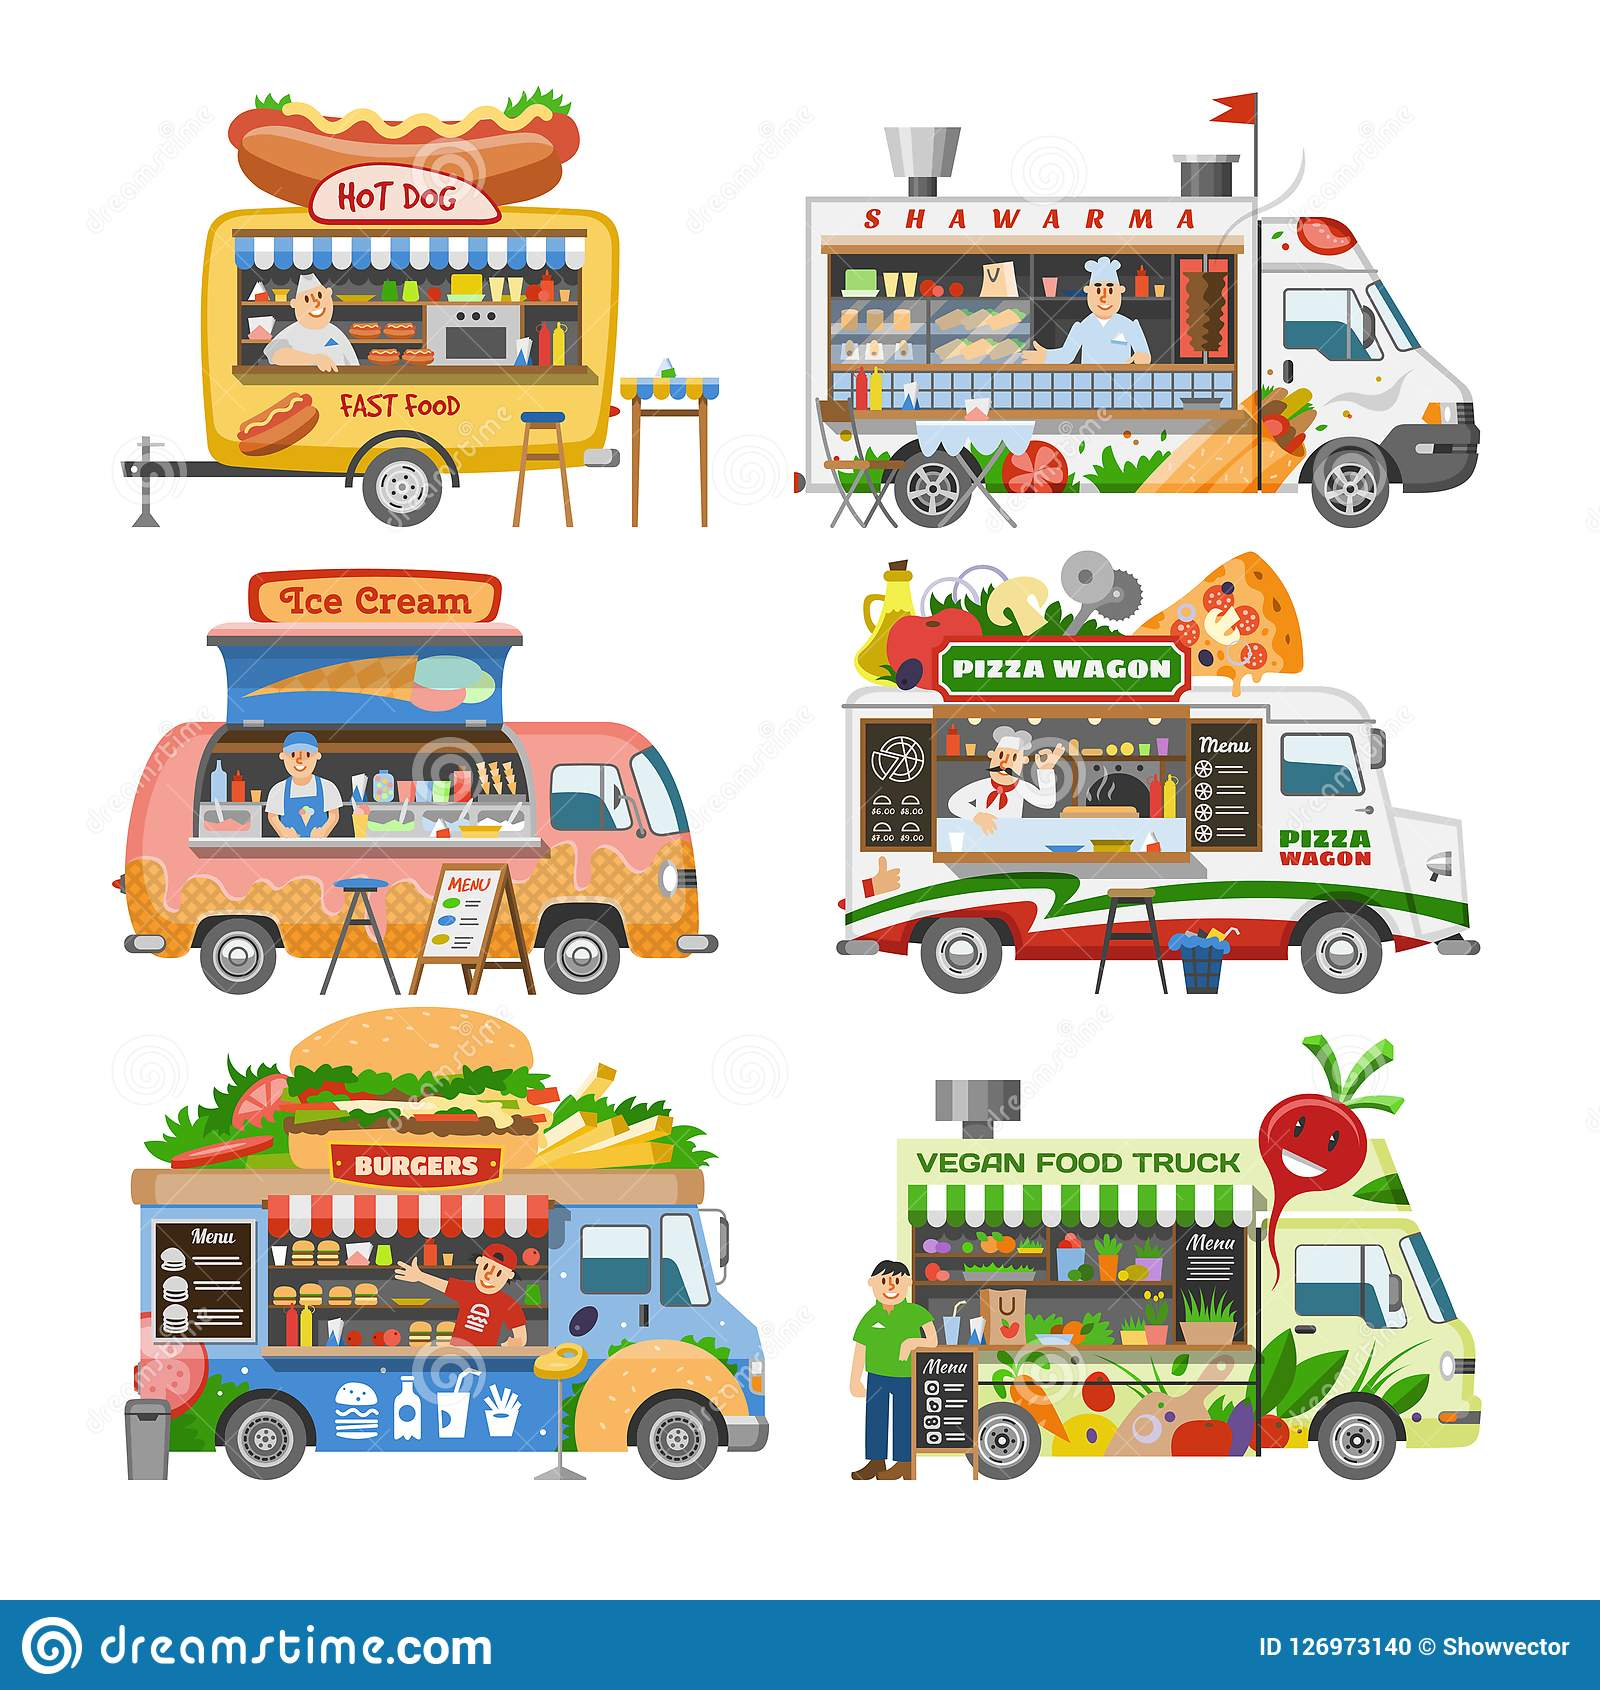 Food truck vector street food-truck vehicle and fastfood delivery transport with hotdog or pizza illustration set of man